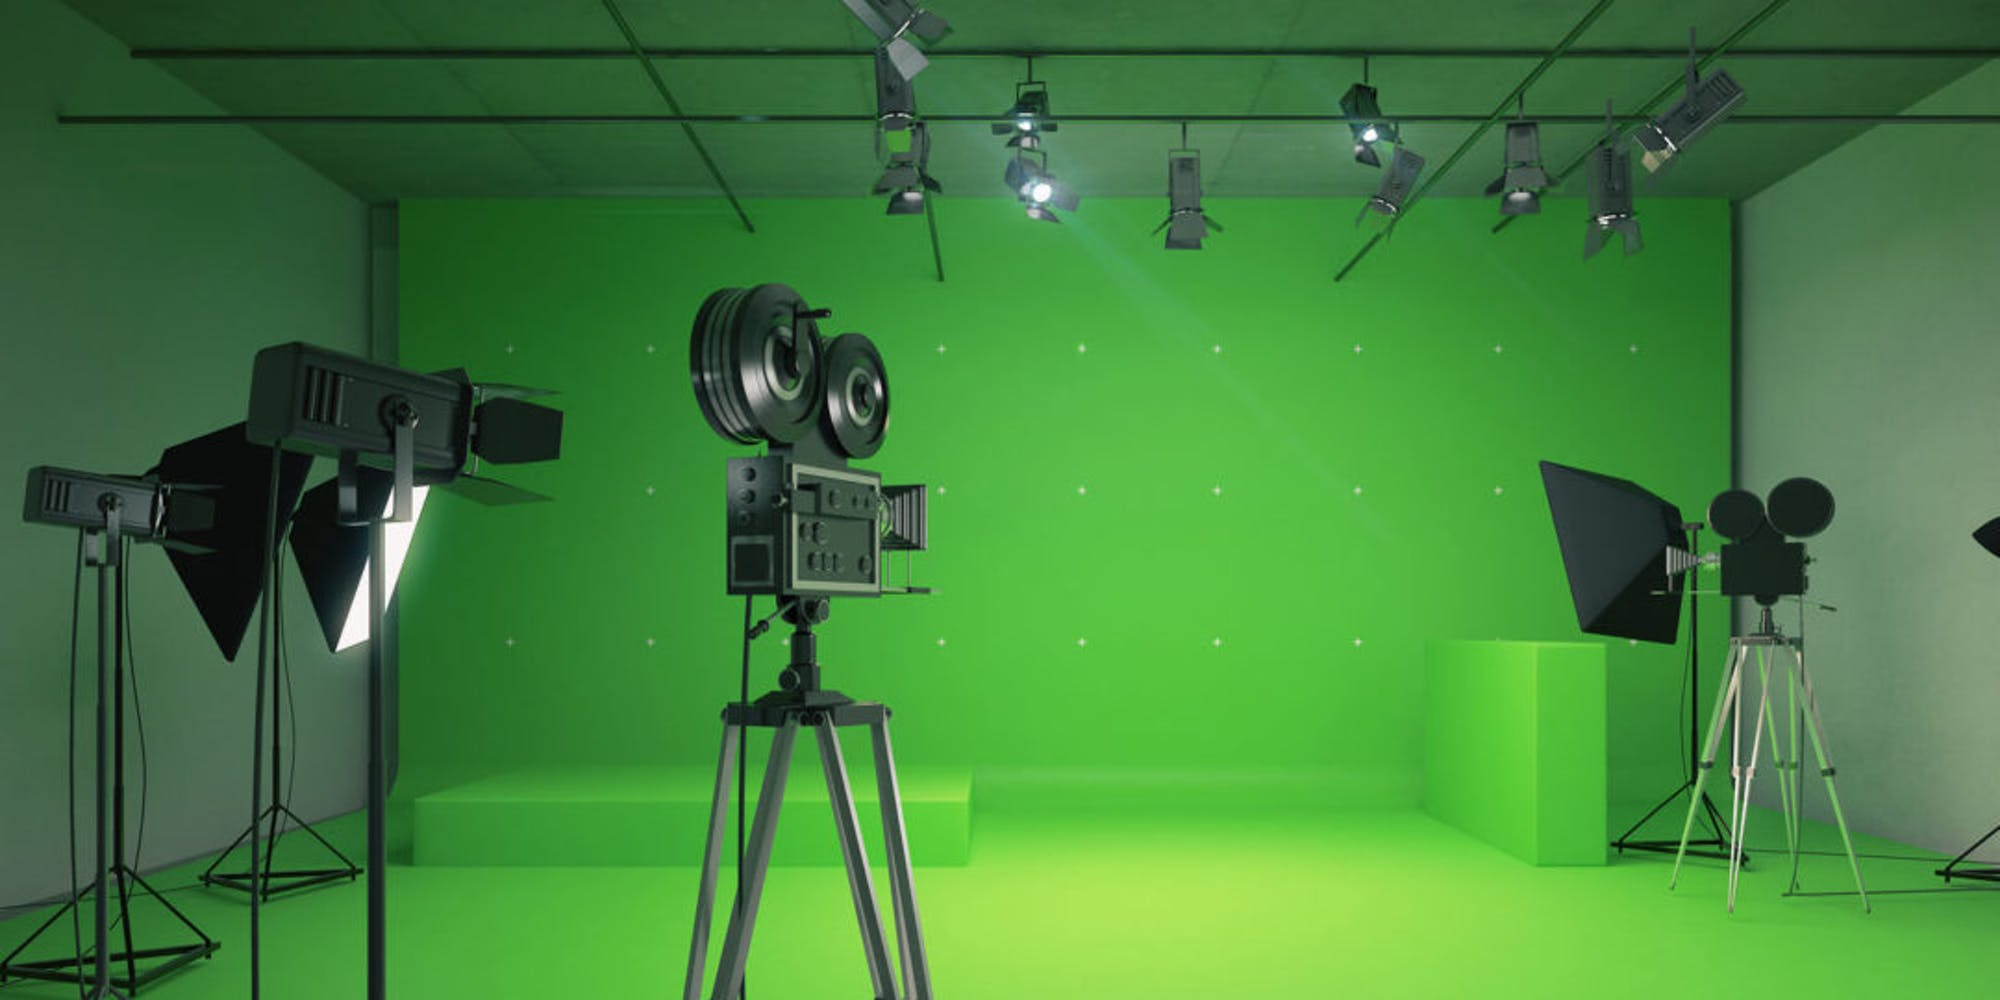 A studio filled with equipment, lights and greenscreen